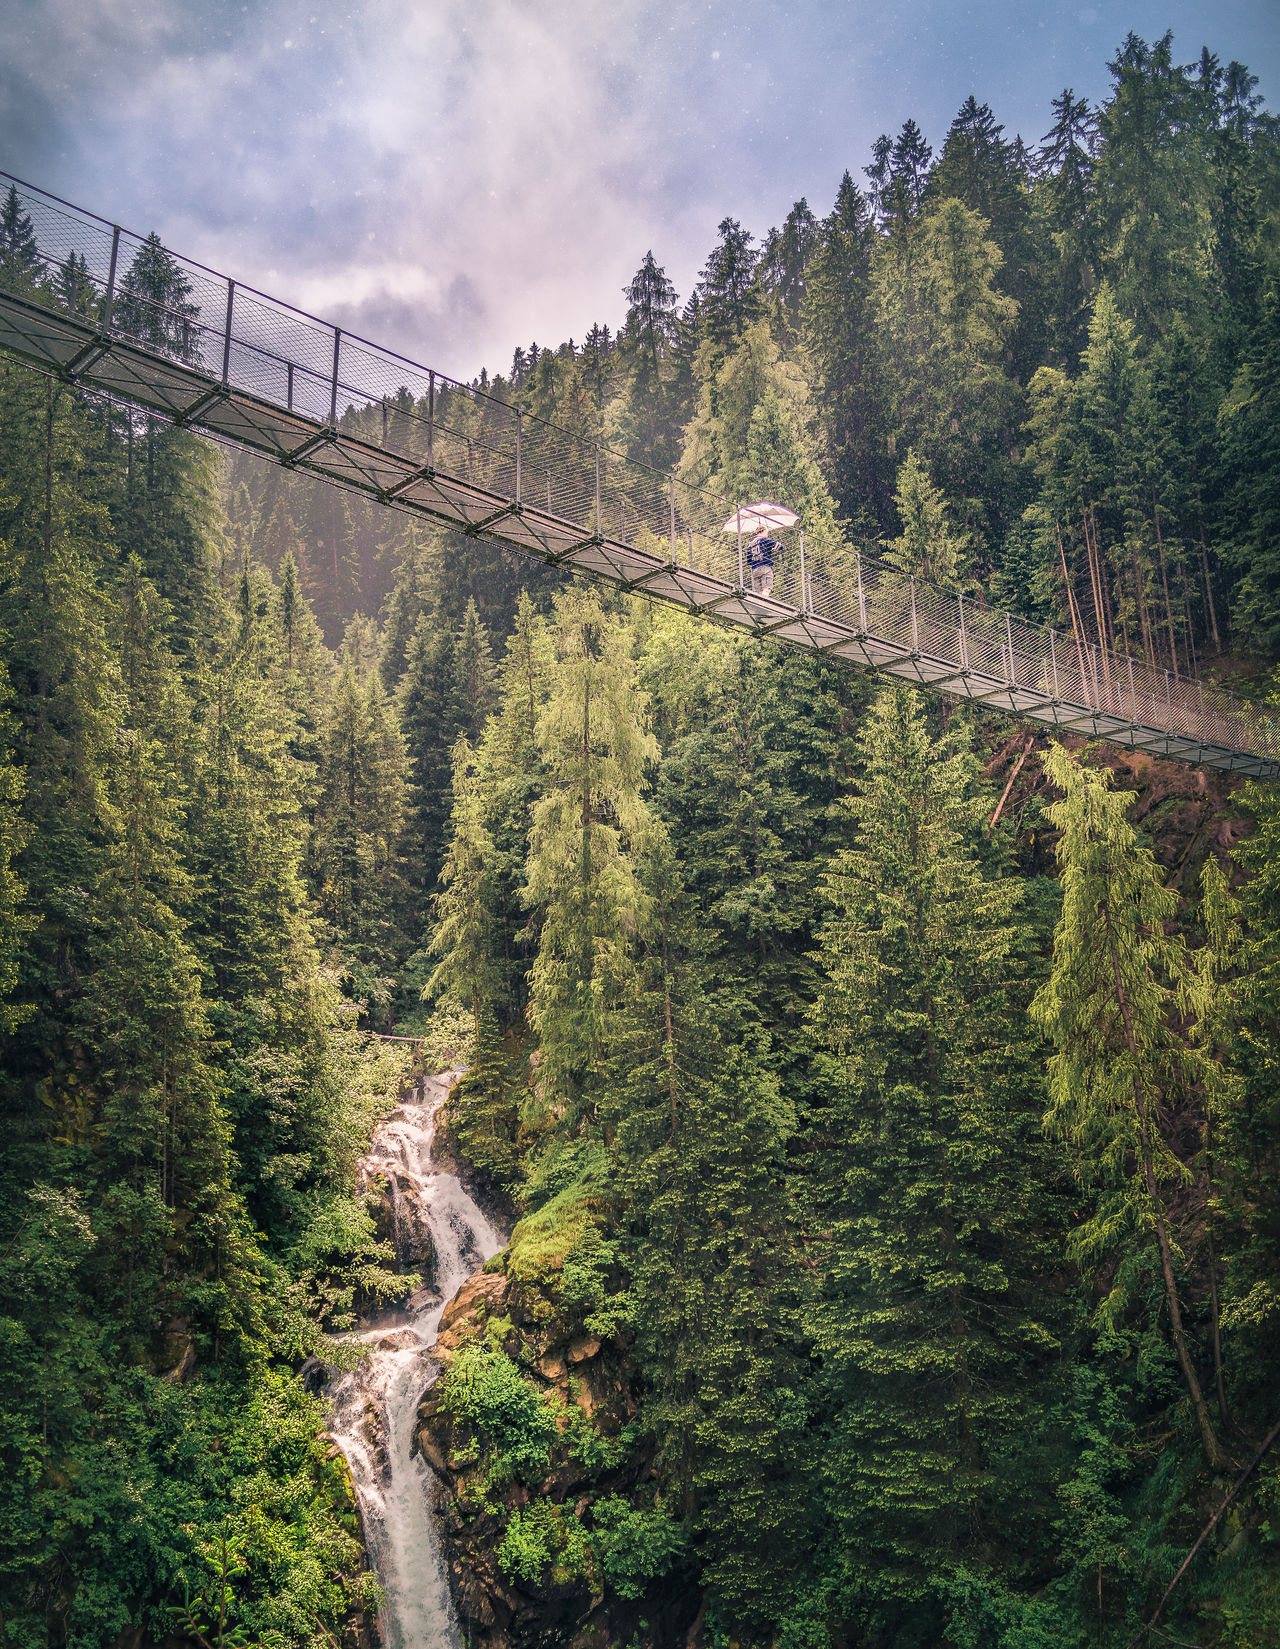 Bridge over the waterfall in Val di Rabbi, Italy Beauty In Nature Bridge Cloud - Sky Green Color Growth Hill Italy Landscape Mountain Nature Outdoors Scenics Sky Tree Val Di Rabbi Waterfall Eyeemphoto